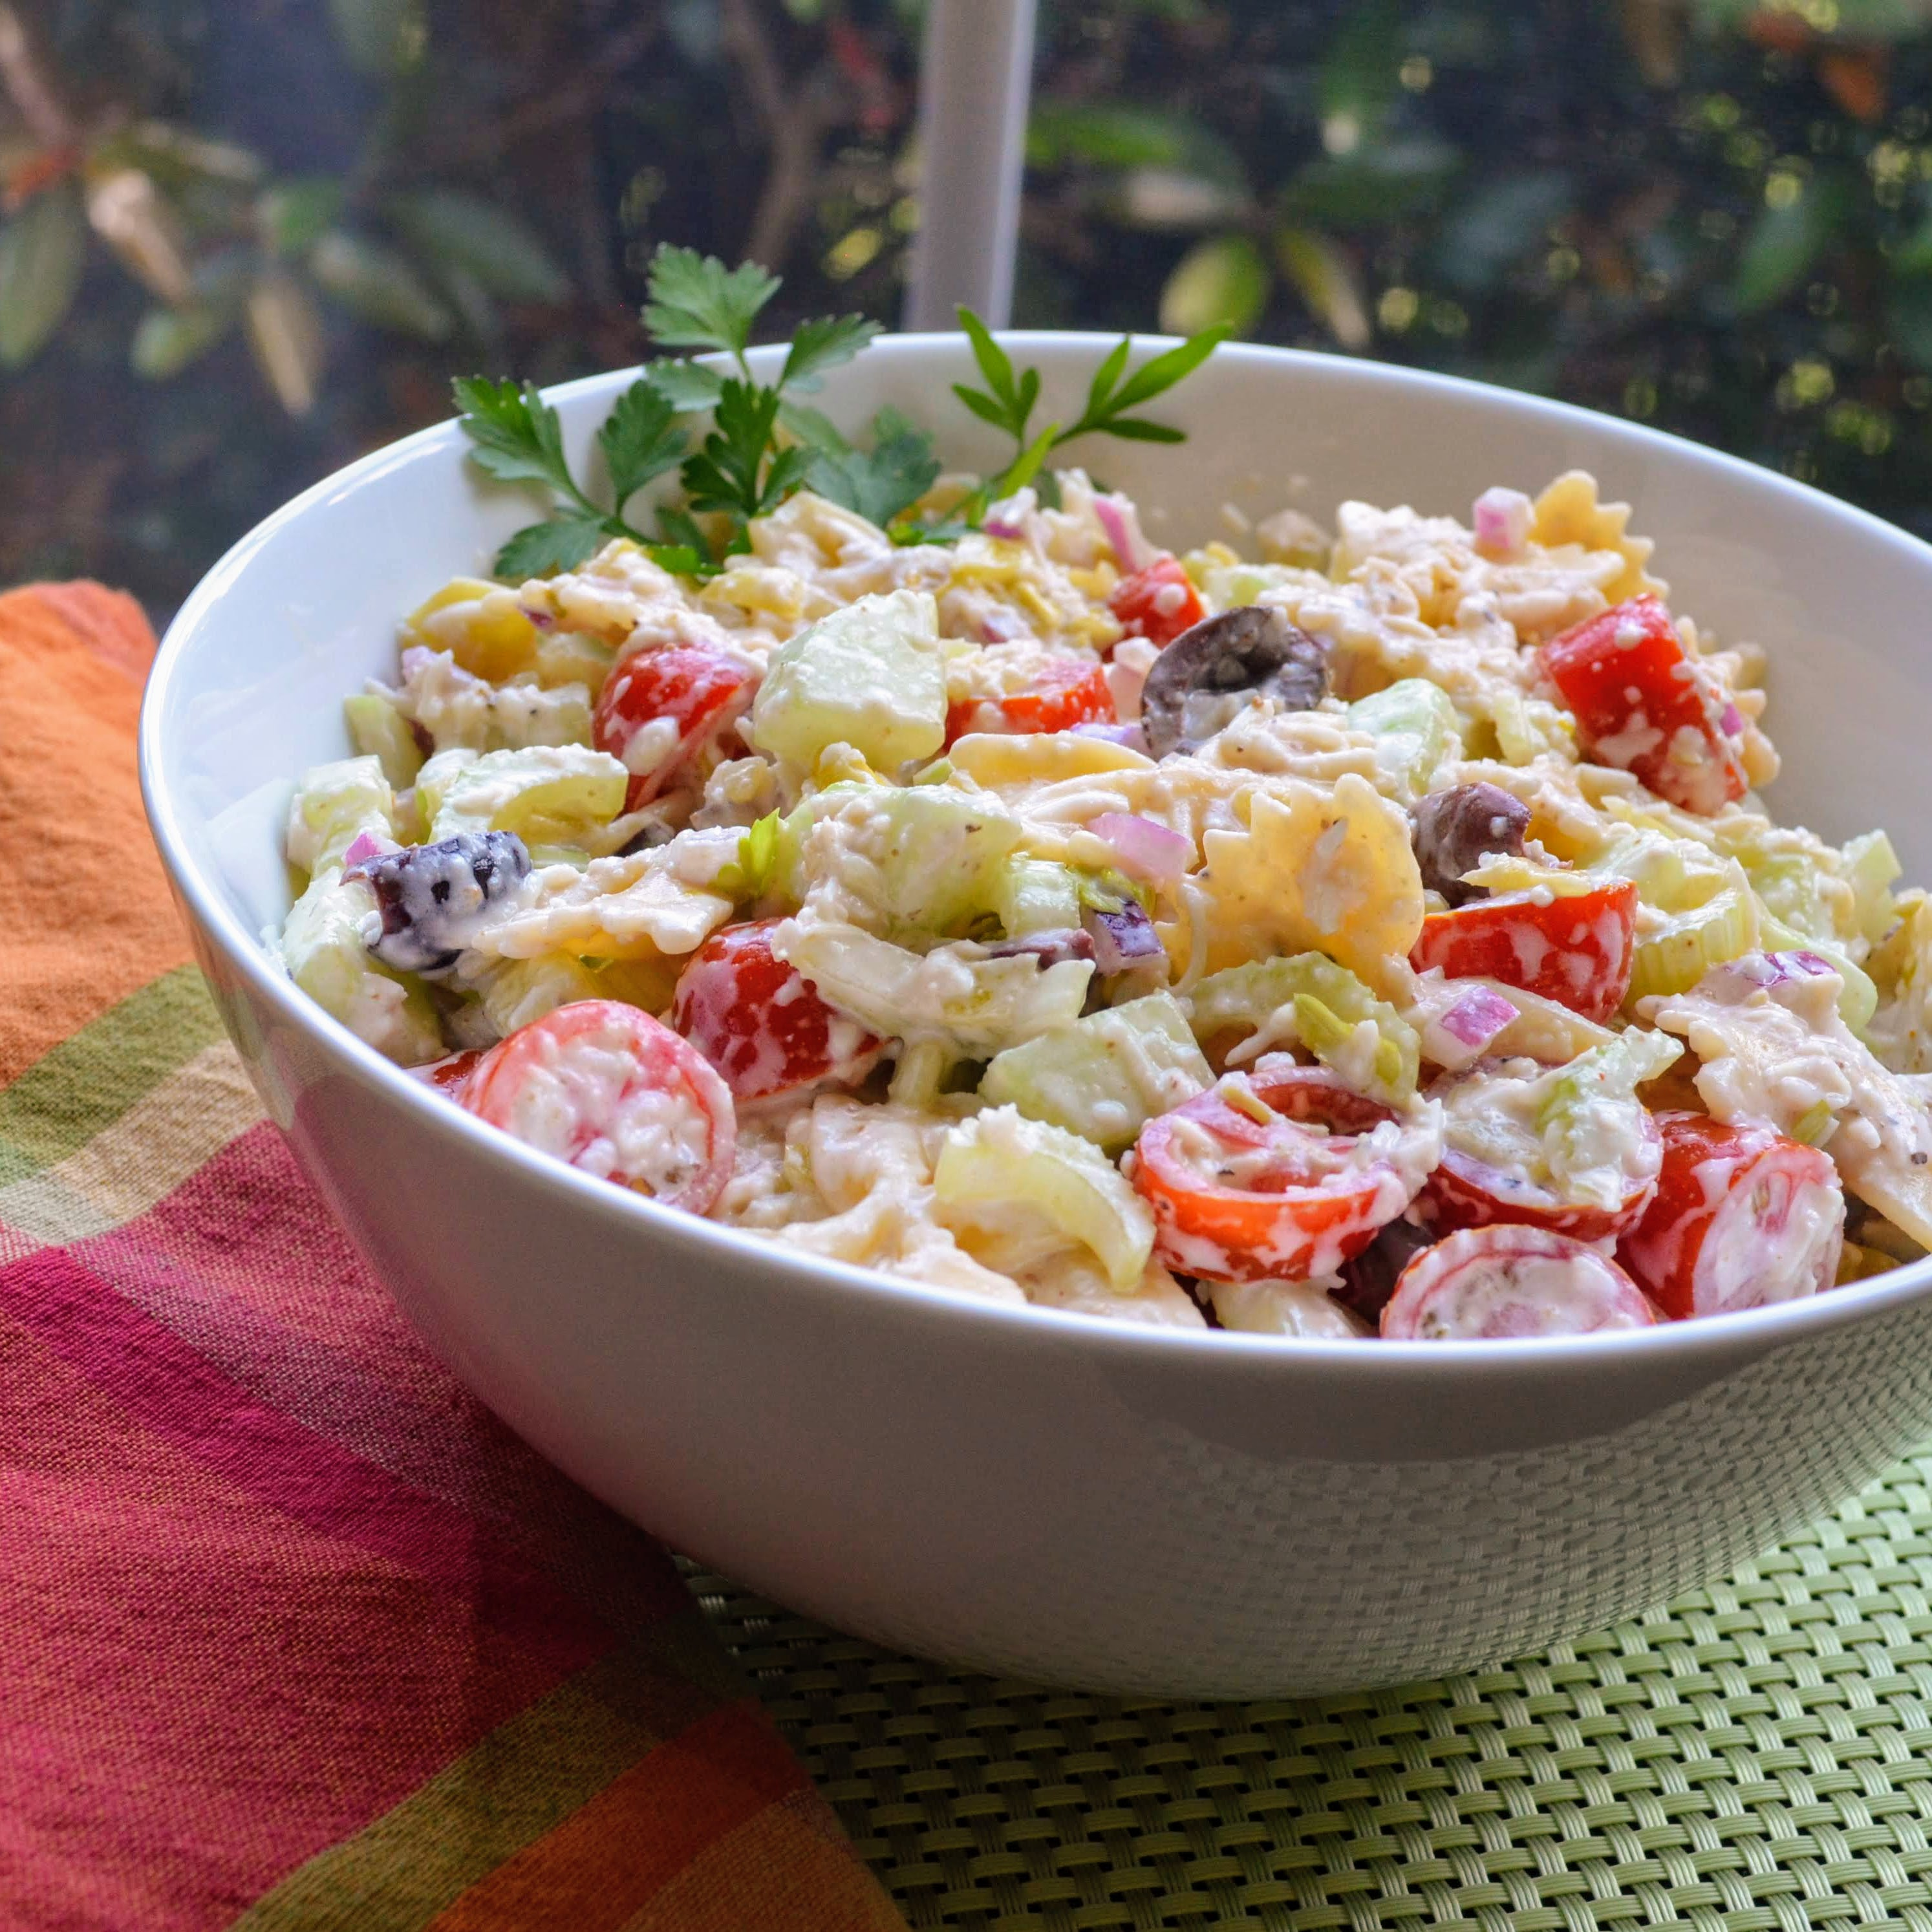 """""""A flavorful diversion from the run-of-the-mill Italian pasta salad,"""" says A. Piatt. """"I like to serve this with grilled, fried, or barbecued chicken, and a crusty artisan bread. I would double the portions if you want to have leftovers when serving 4 or more; this goes fast in my home! Enjoy!"""""""